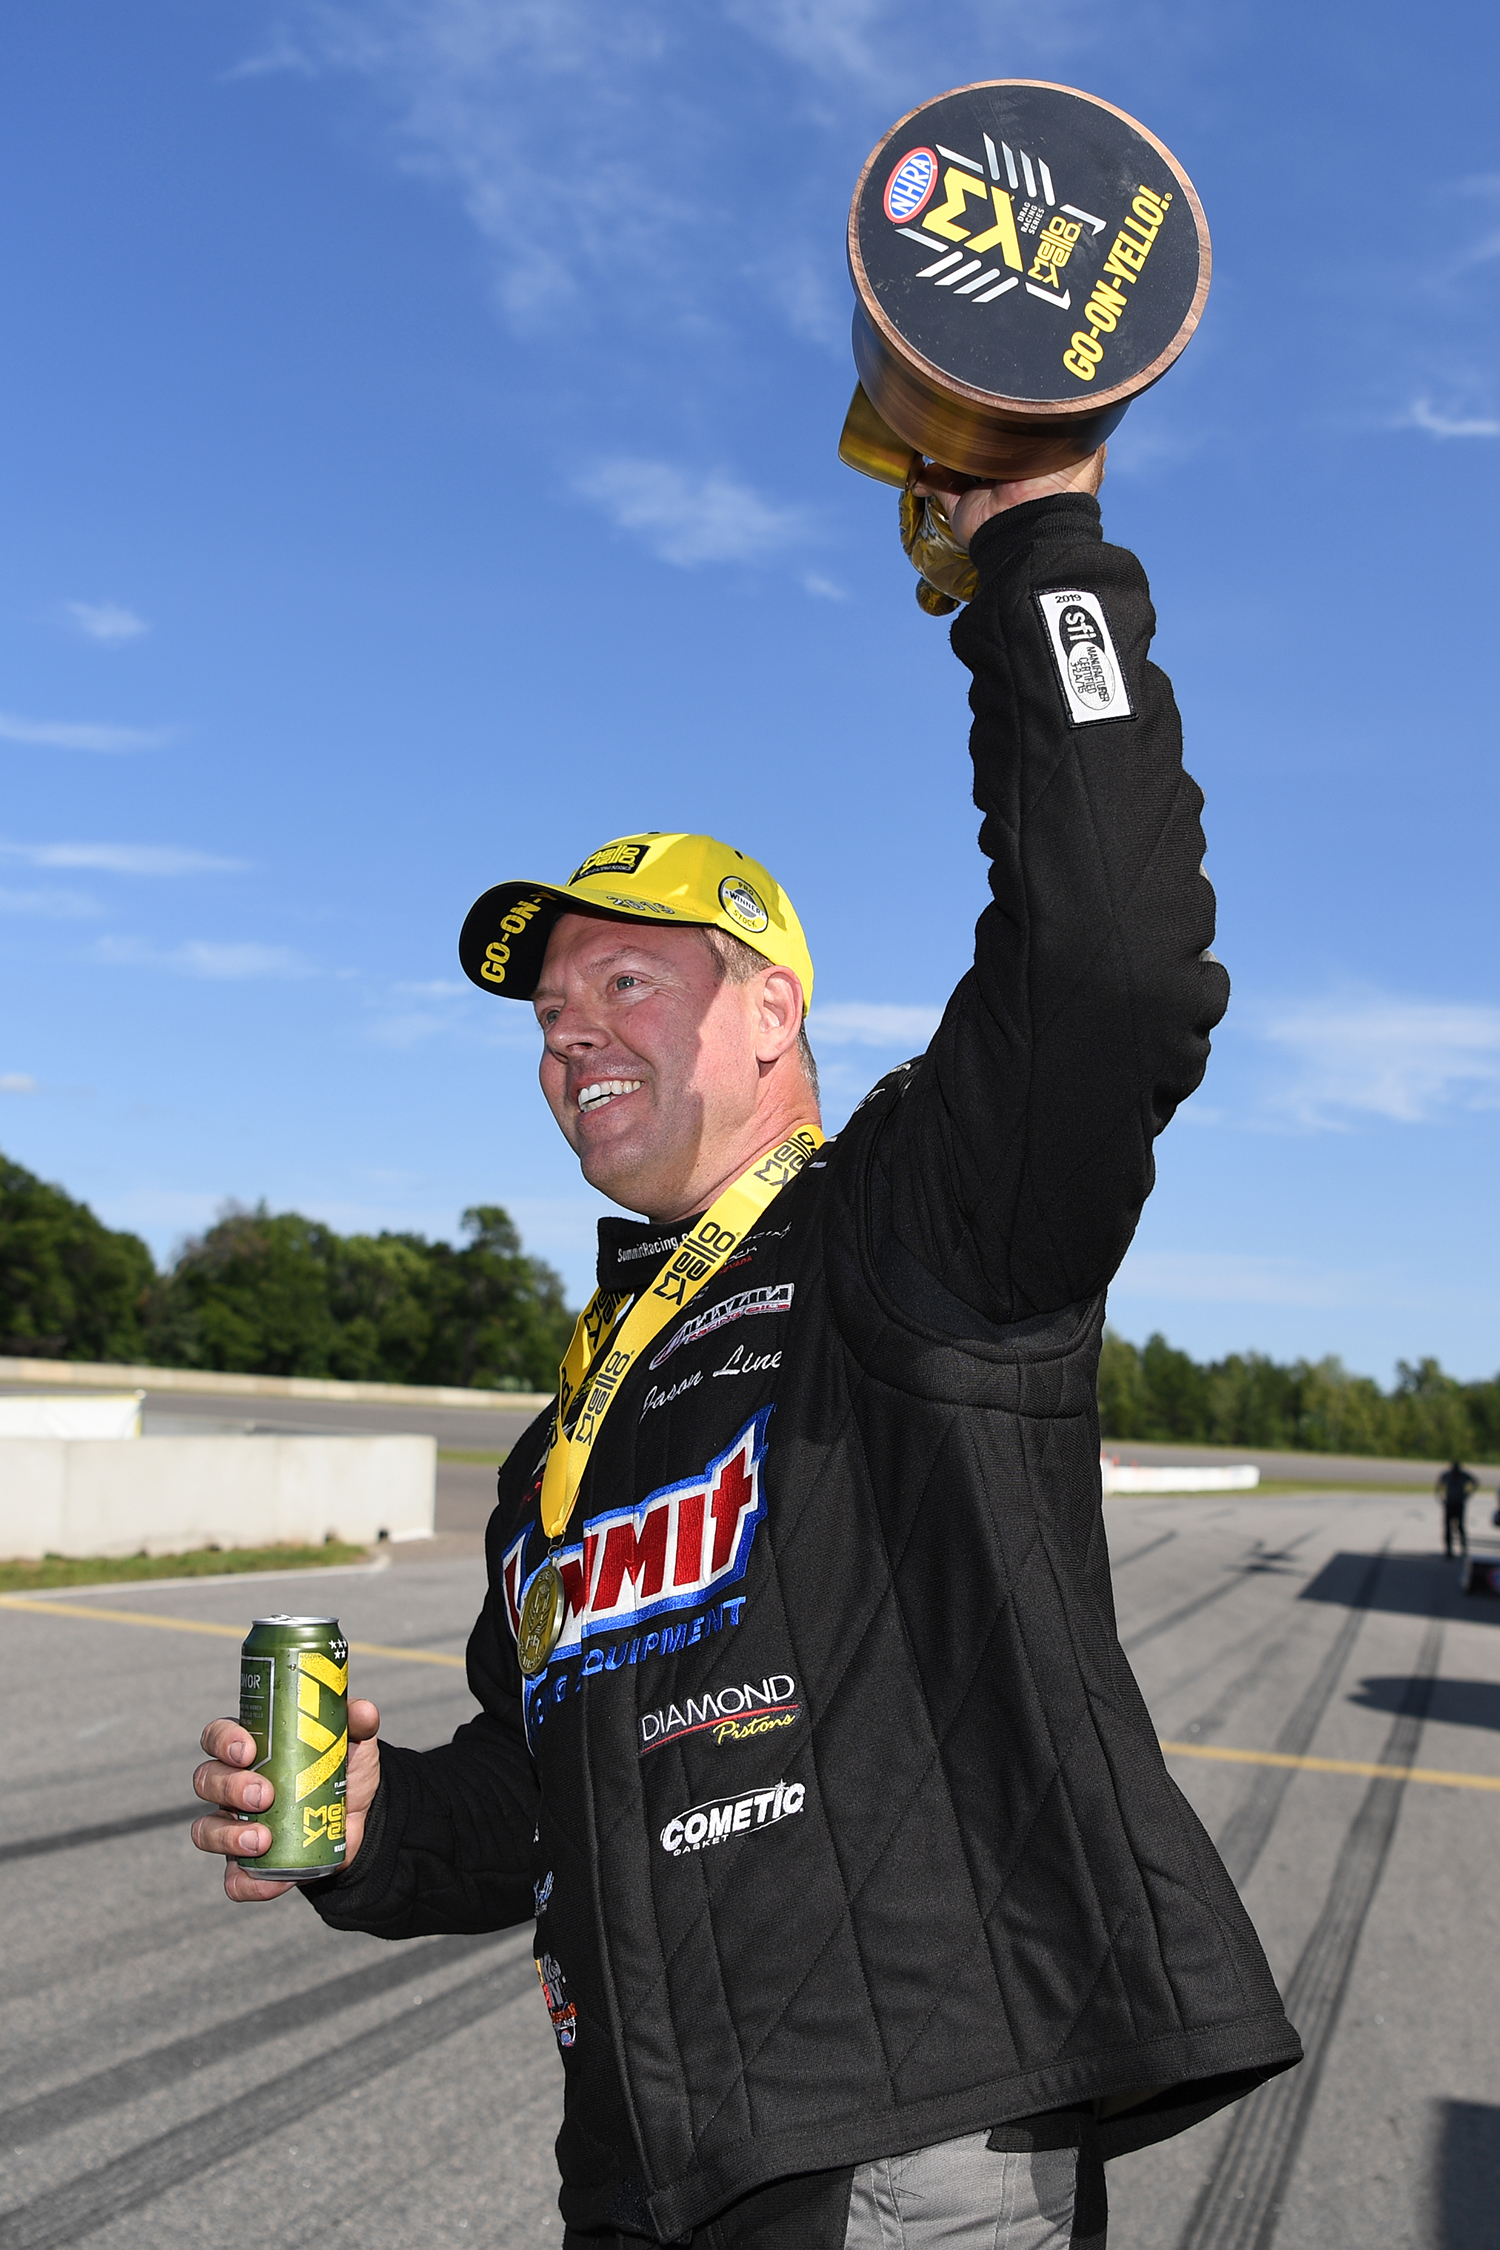 Pro Stock driver Jason Line after winning the Wally at the 2019 Lucas Oil NHRA Nationals